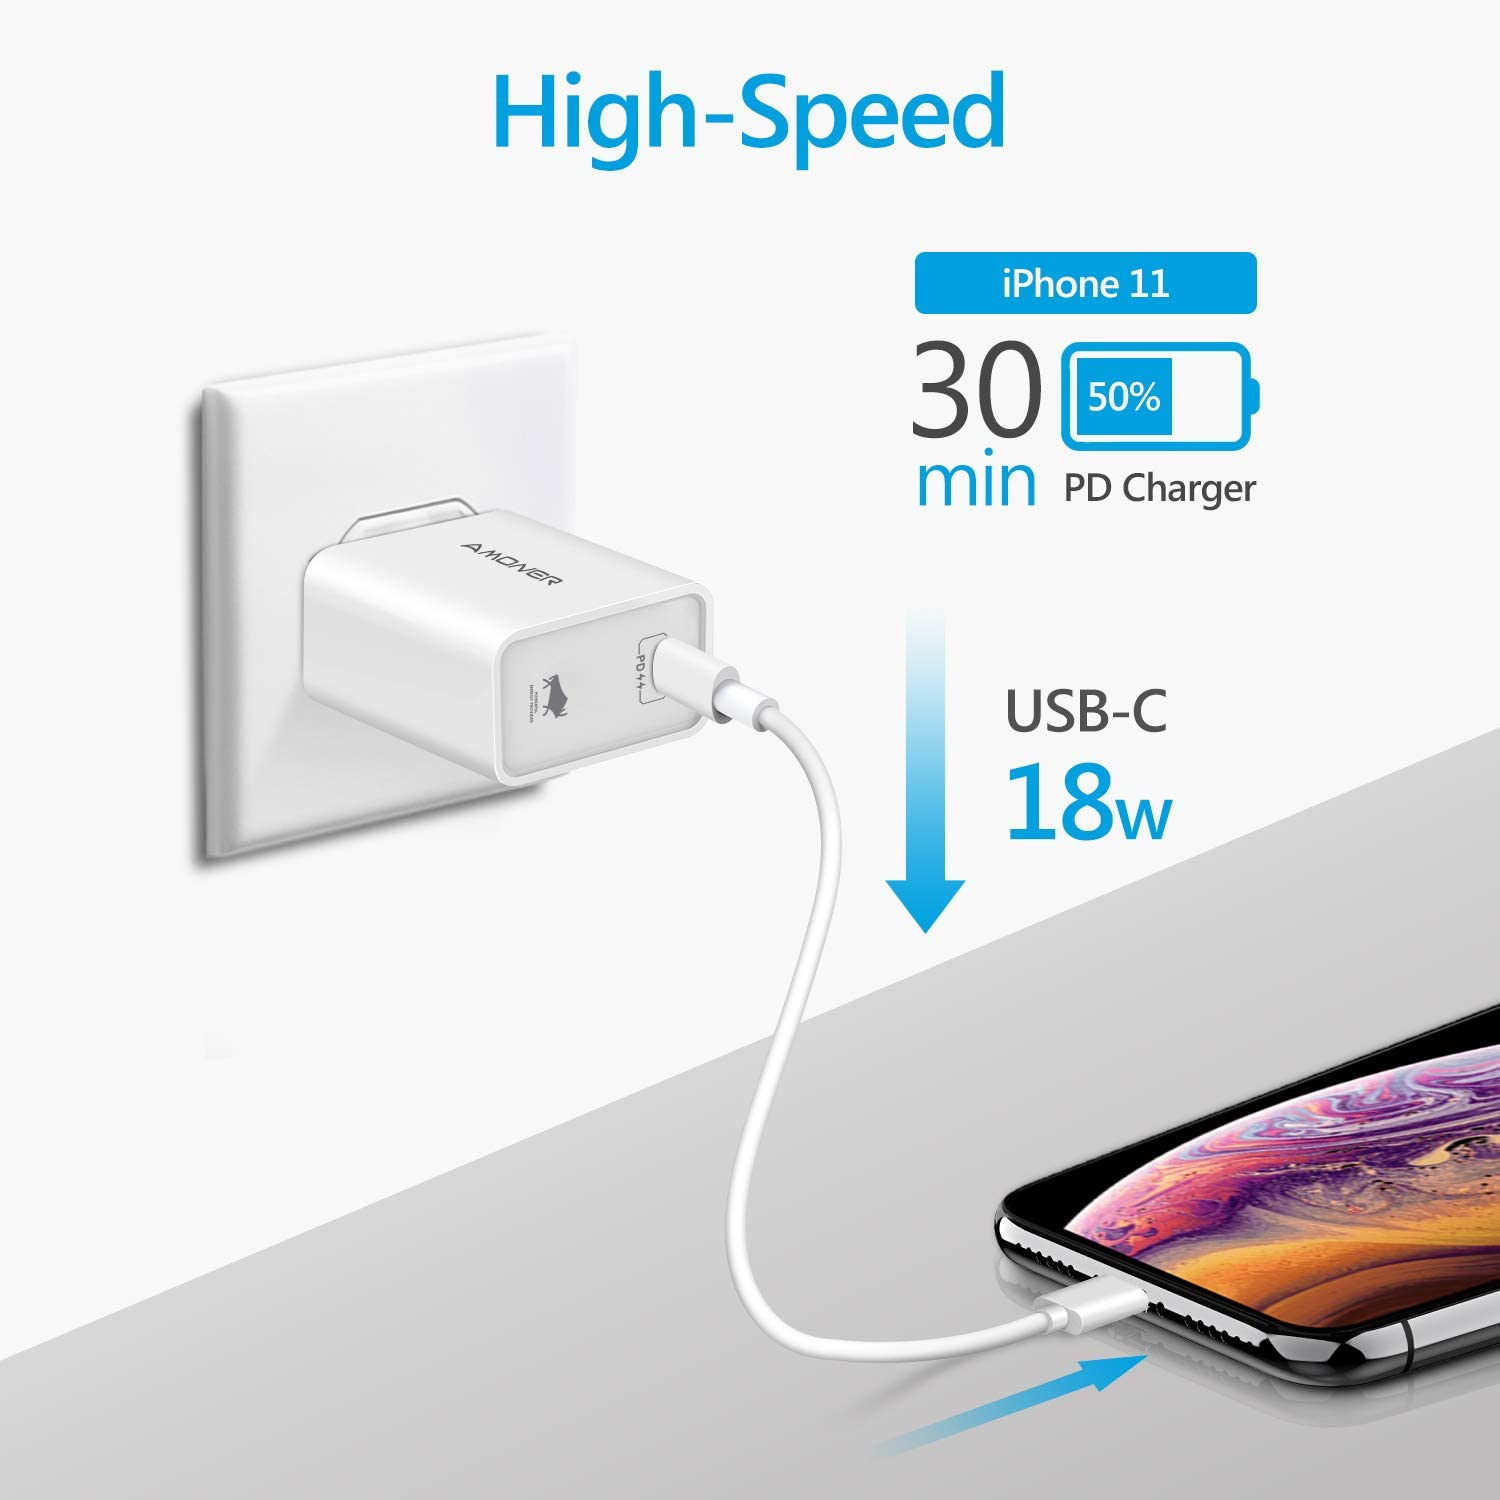 USB C Charger iPad Pro Galaxy S10+// S9+ LG V50 Google Pixel 3a// XL Amoner 18W PD 3.0 Type-C Fast Charging Adapter Compatible with iPhone 11//11Pro//11 Pro Max//Xs Max//XR//X// 8 Plus